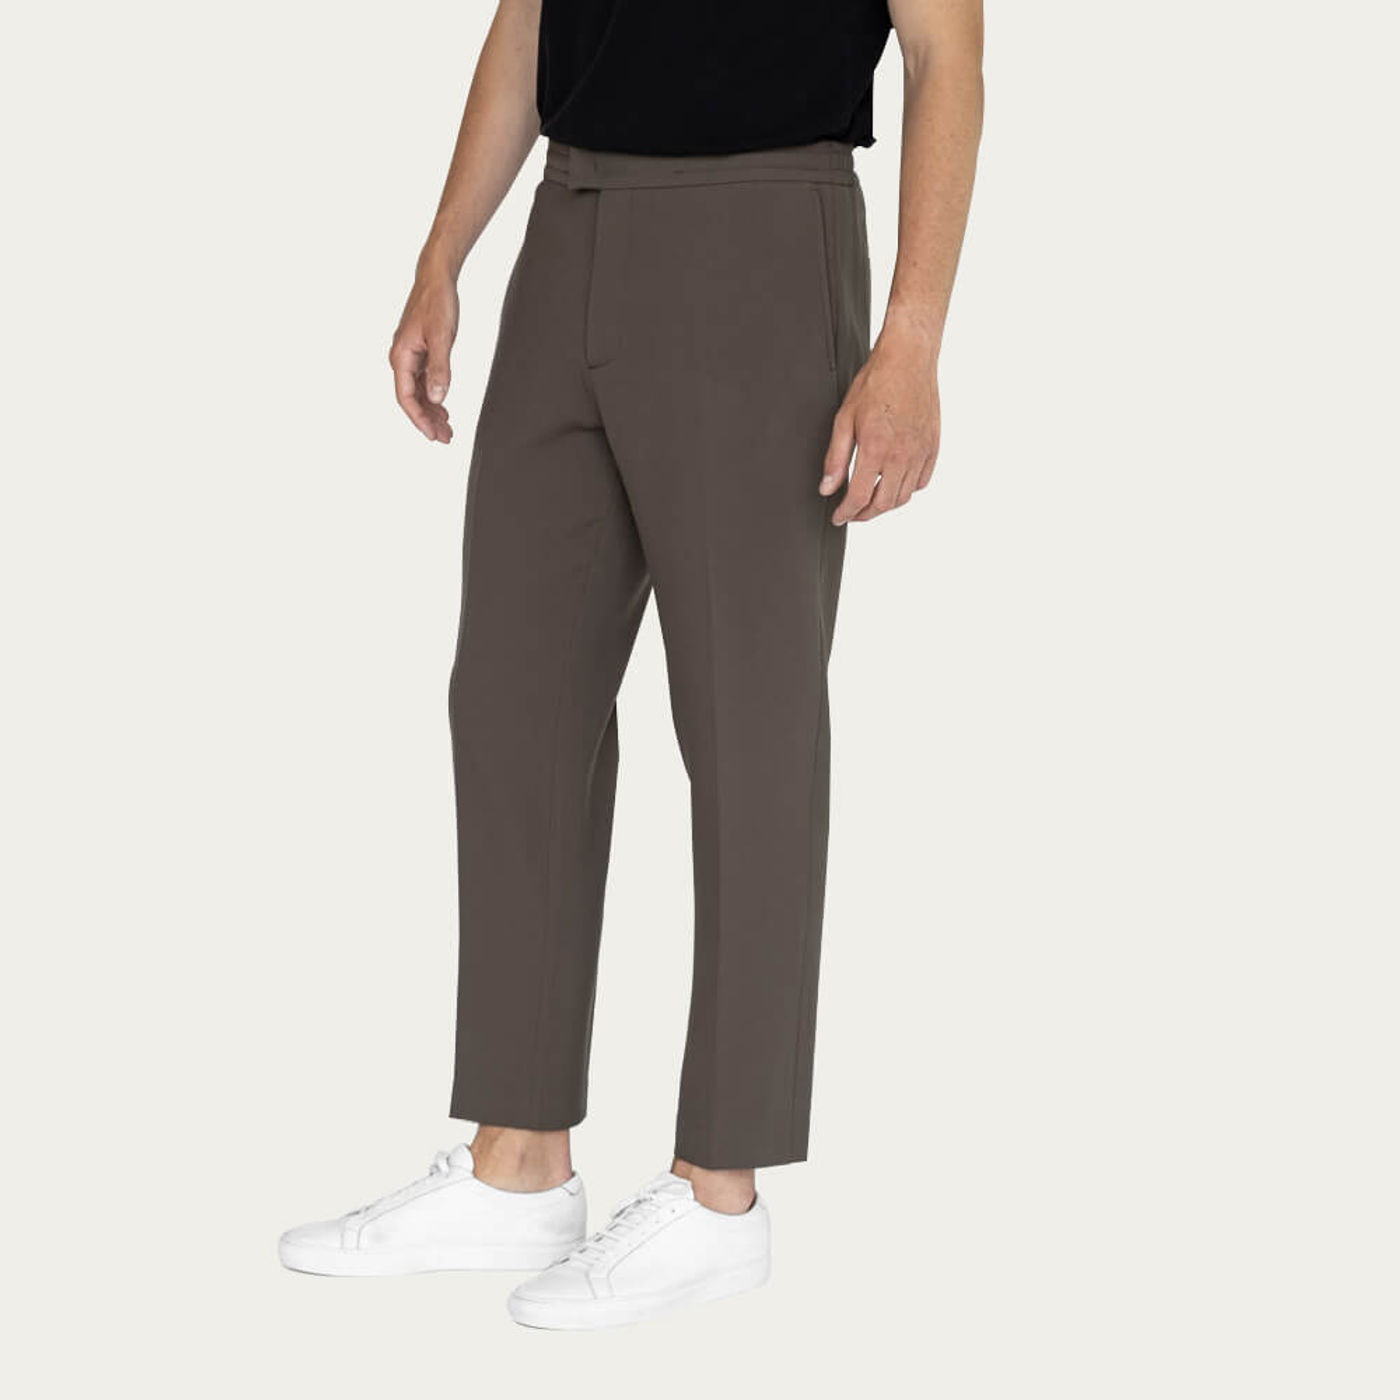 Charcoal/Taupe Easy Tailored Trouser - Pack of 2 | Bombinate